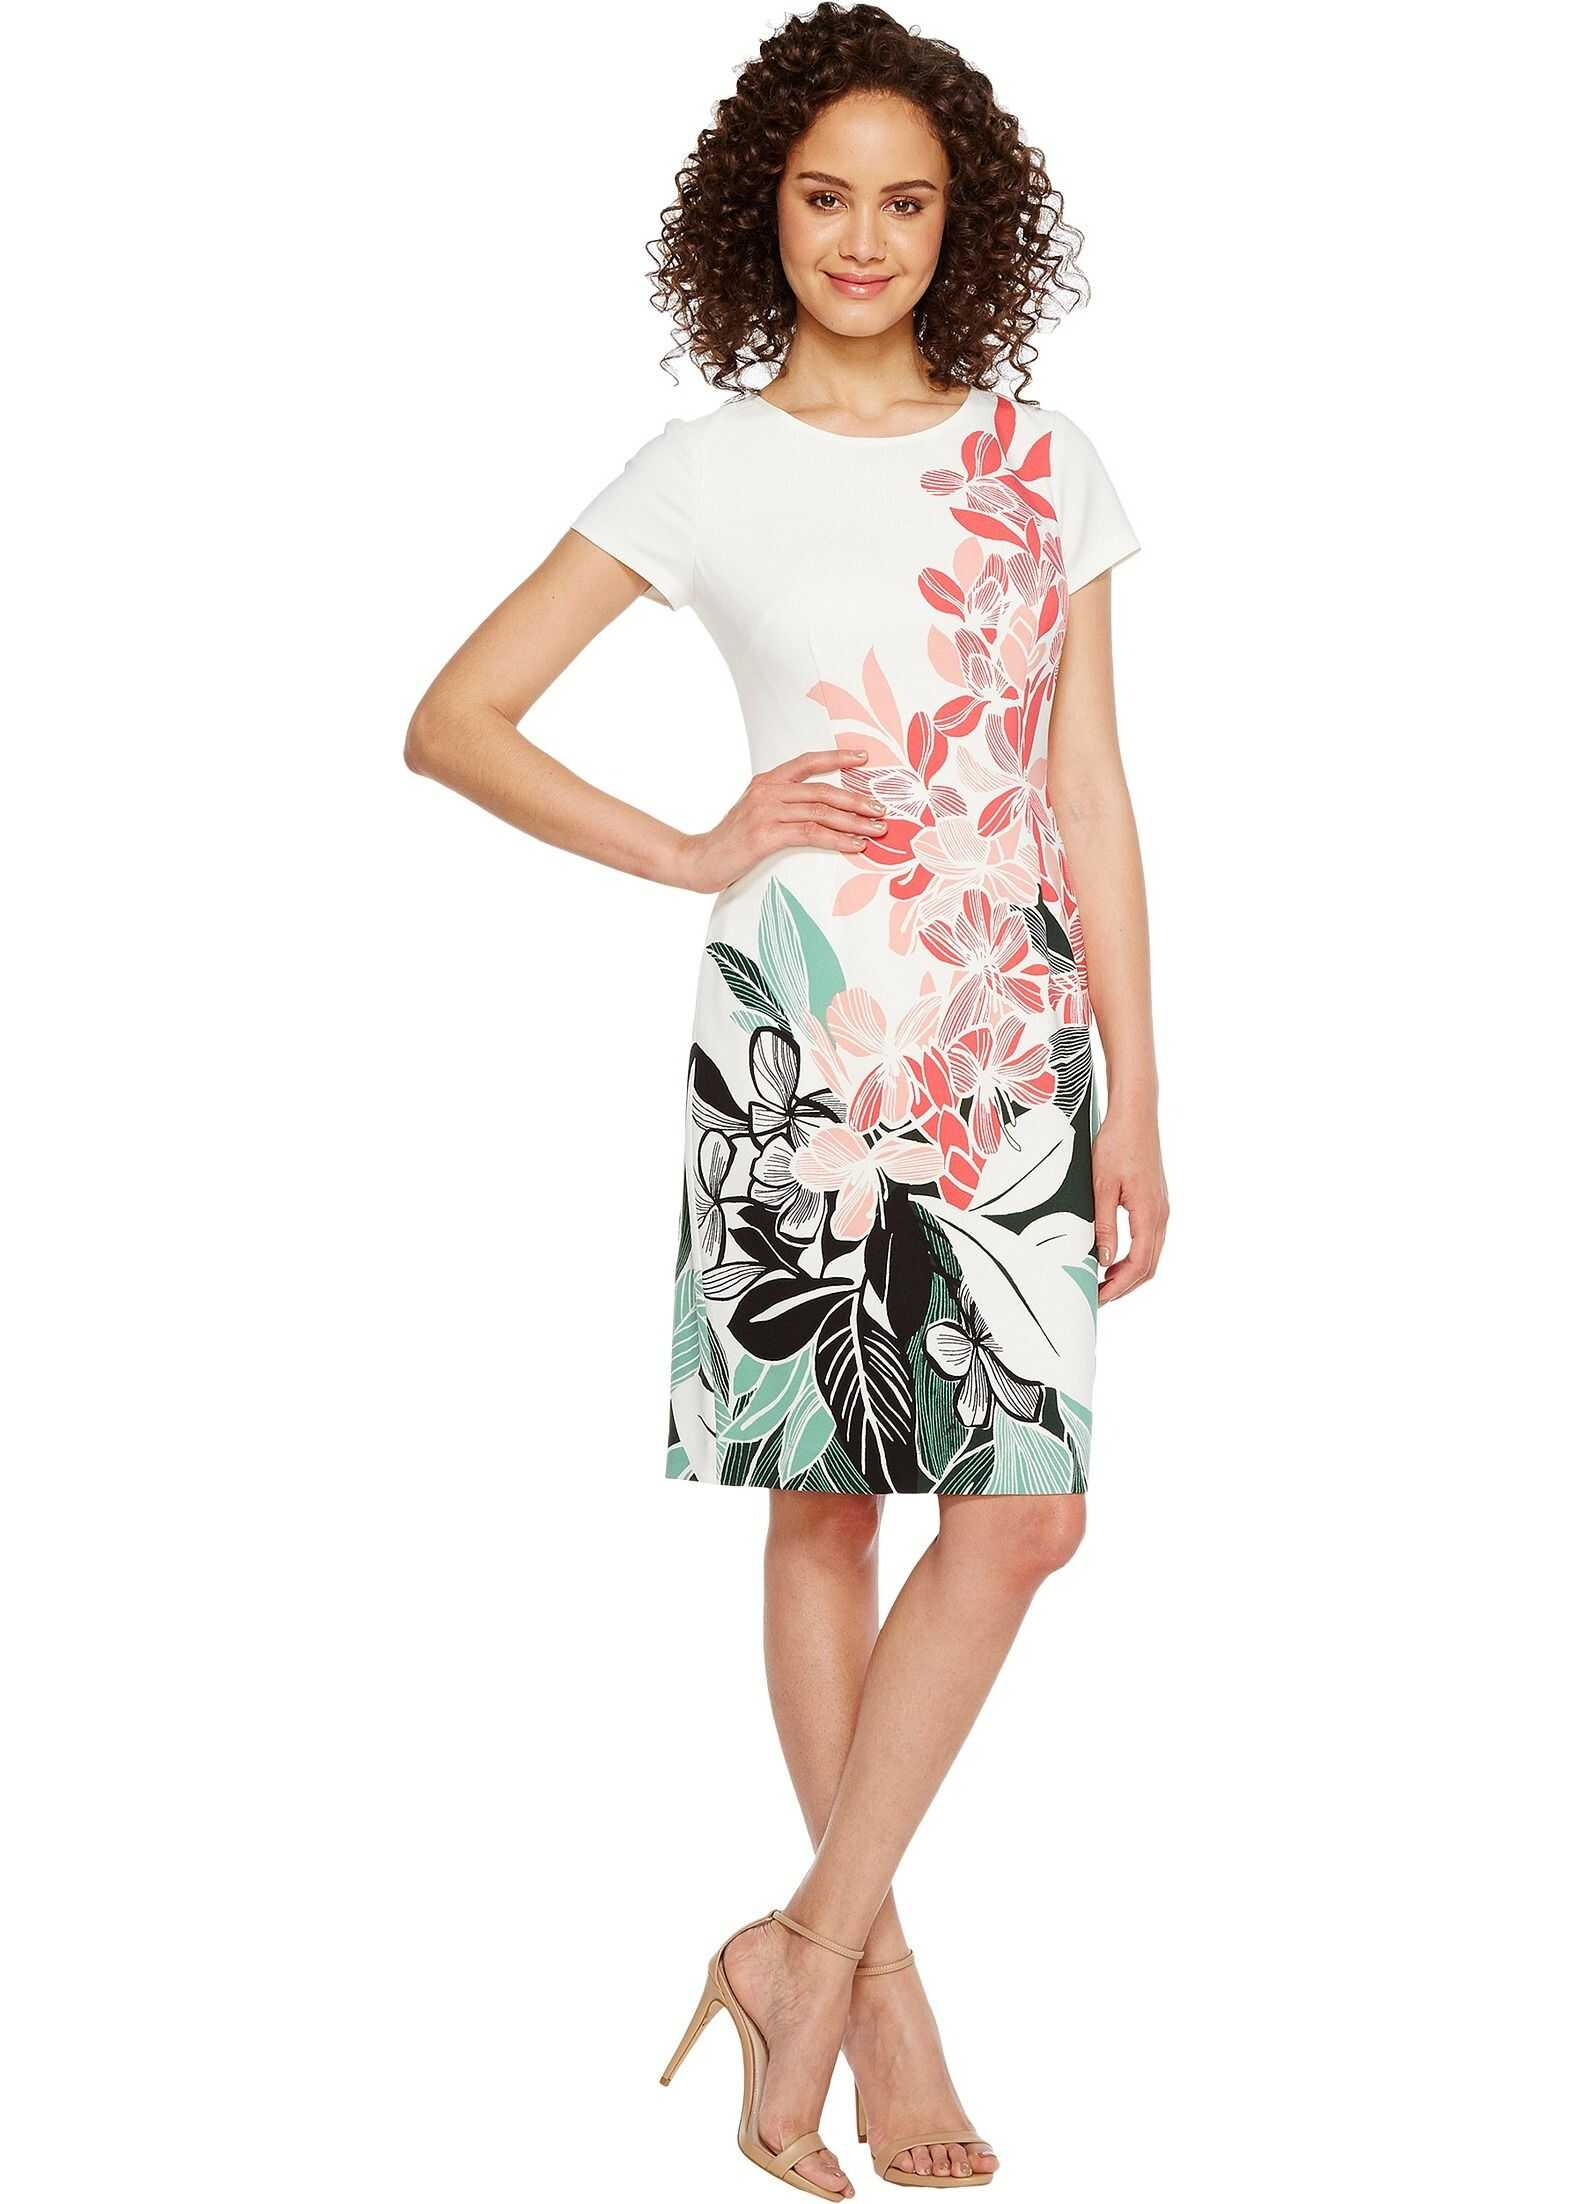 Adrianna Papell Placed Kingston Floral Printed Stretch Crepe Sheath Dress* Pink/Green Multi